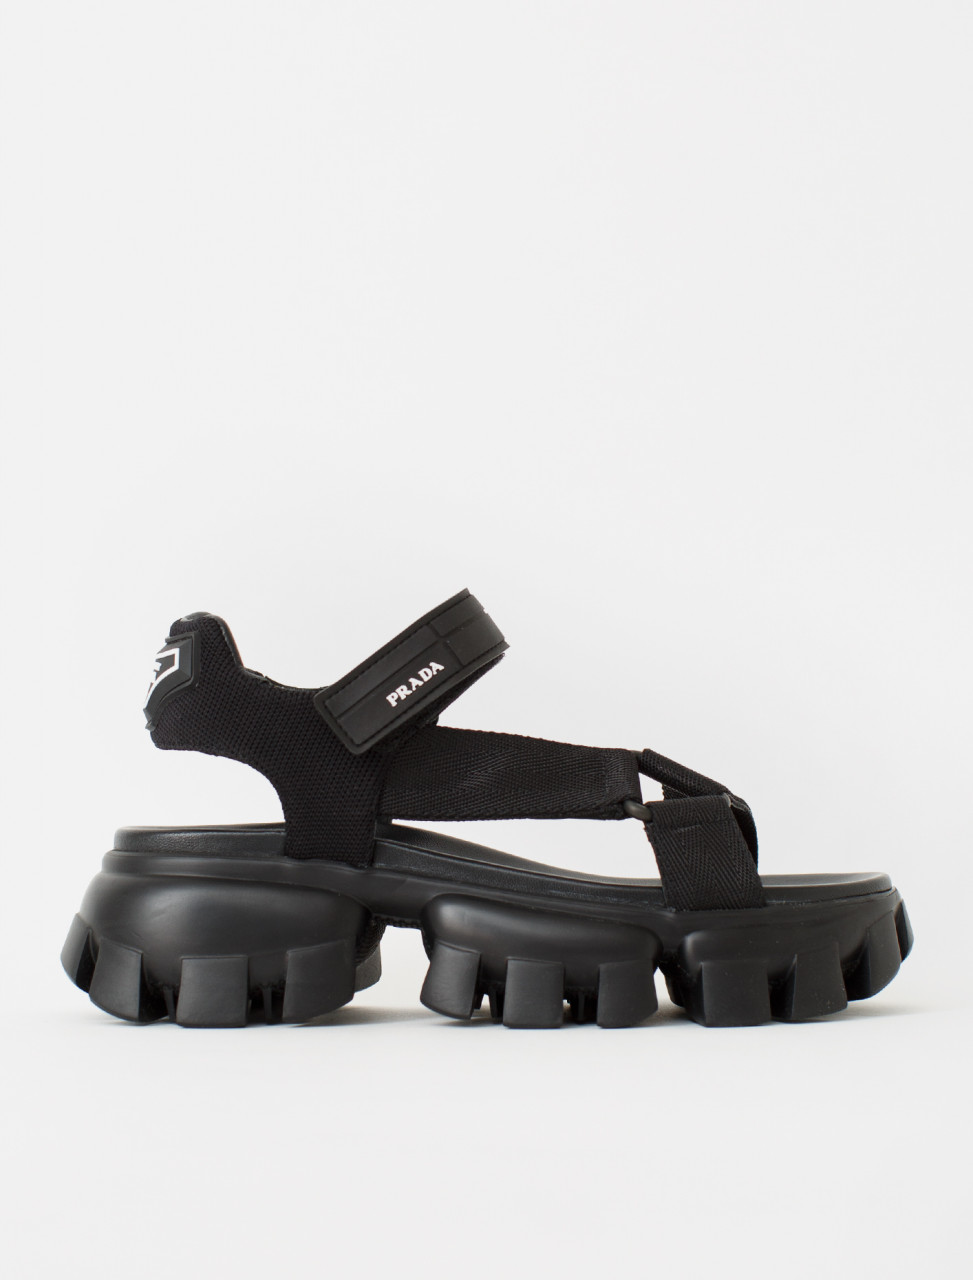 Nylon Sandal in Black